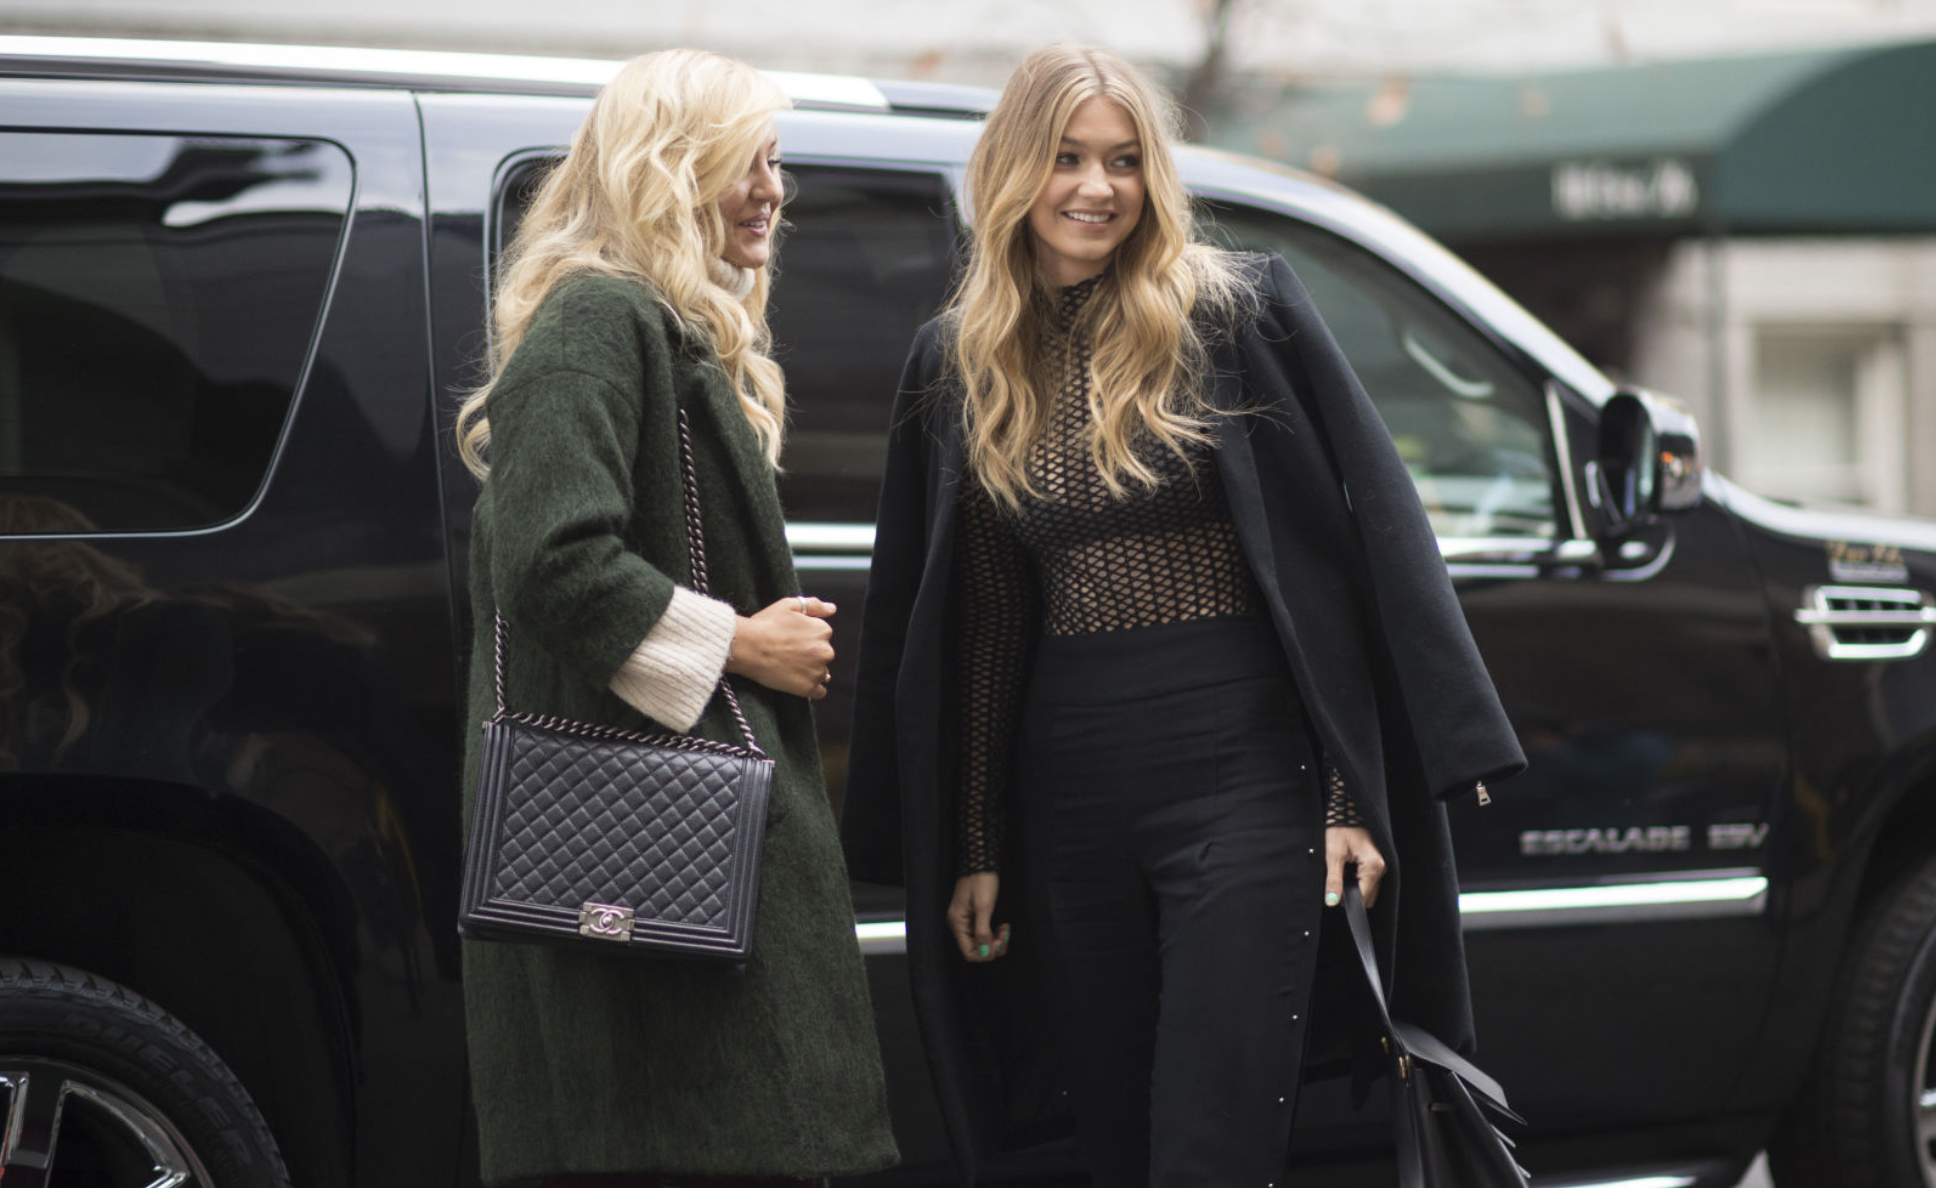 Models Off Duty: Angels Before The Victoria's Secret Show